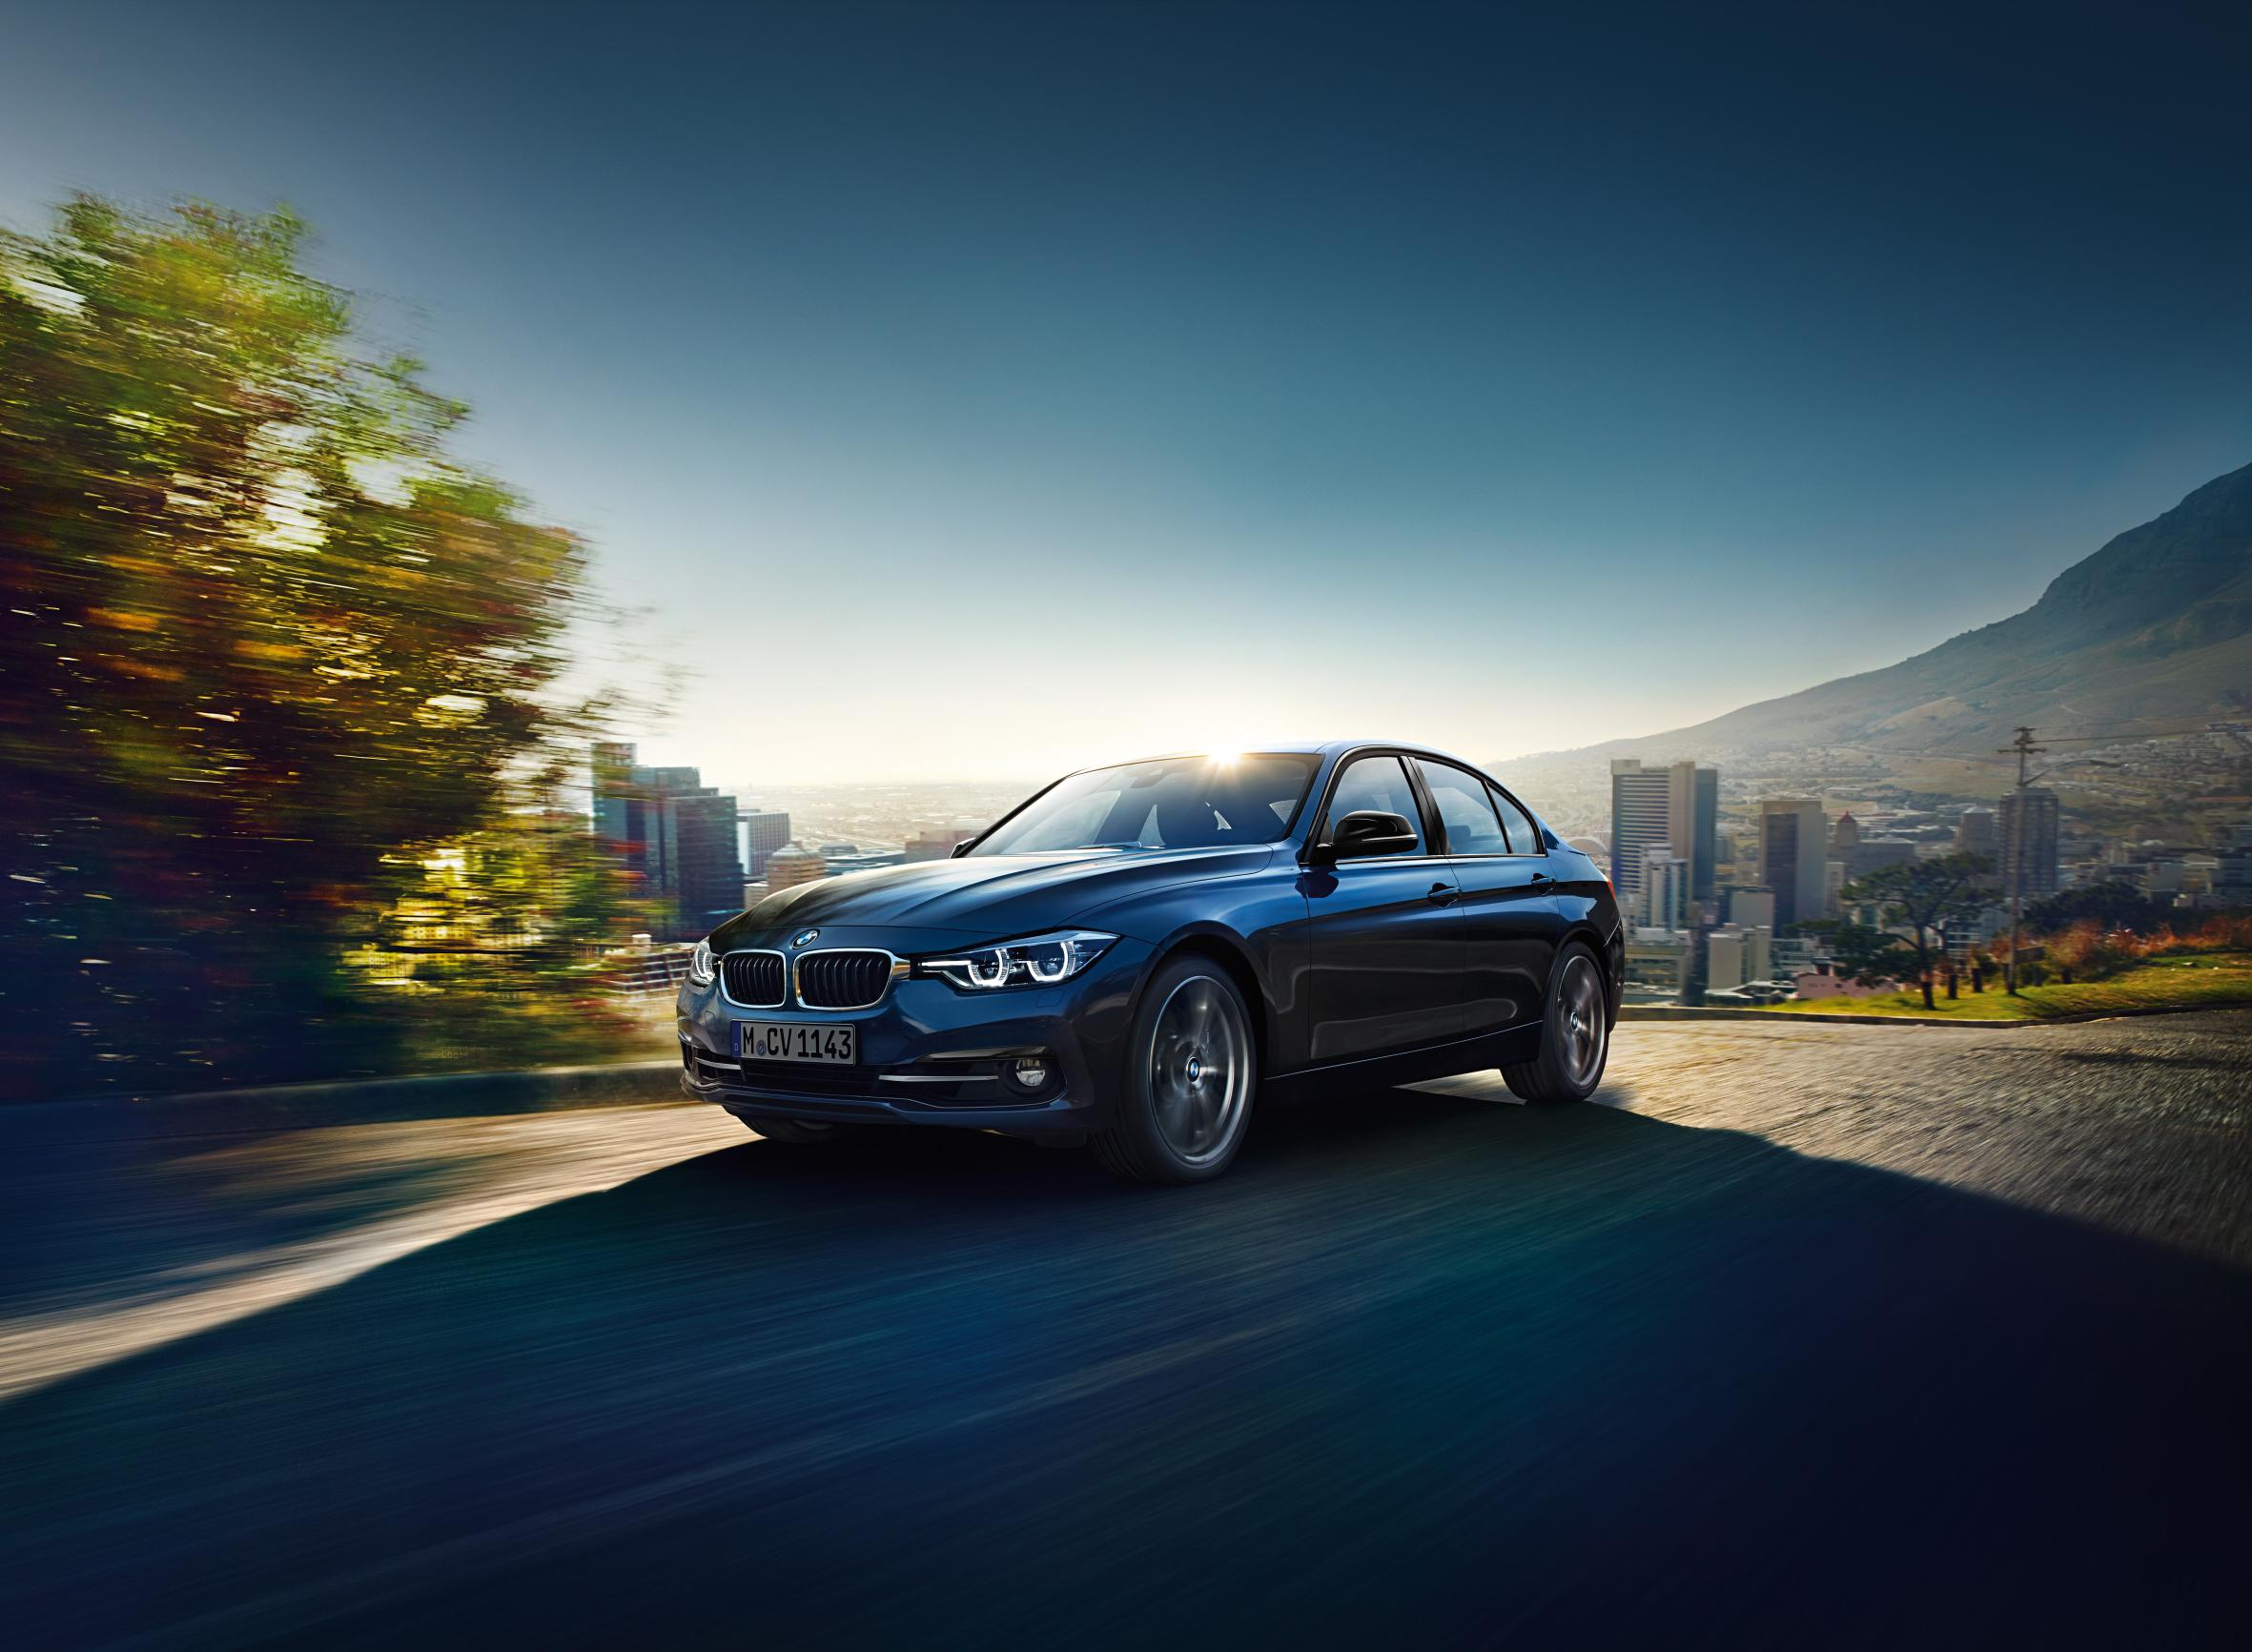 BMW 320d front view